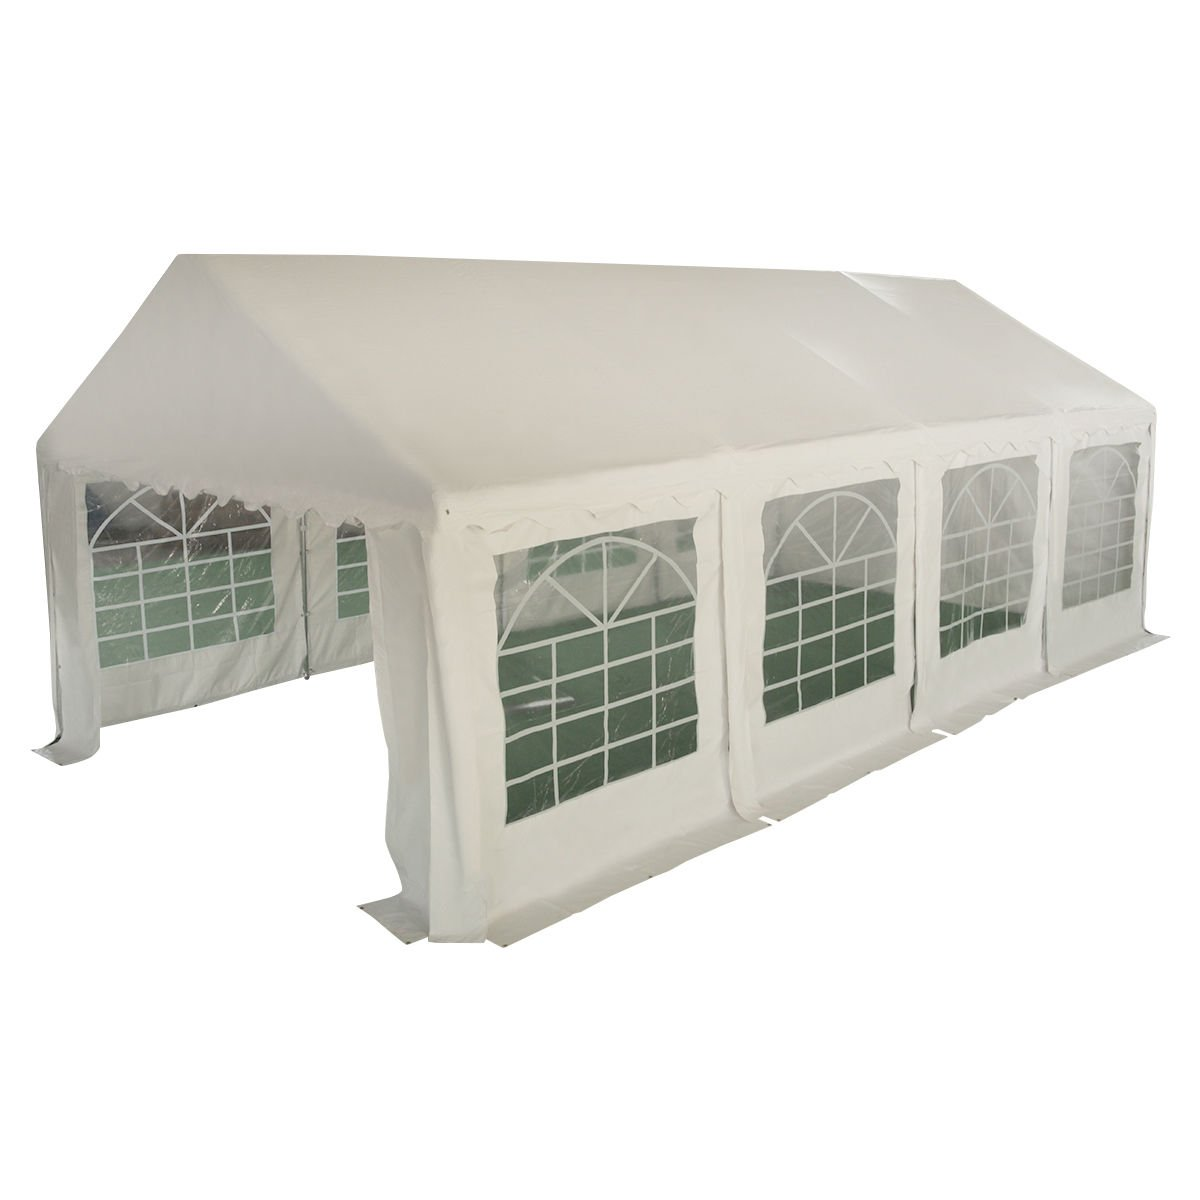 GHP 13'x26' PVC Fabric Galvanized Steel Frame UV Canopy Tent with Plastic Windows by Globe House Products